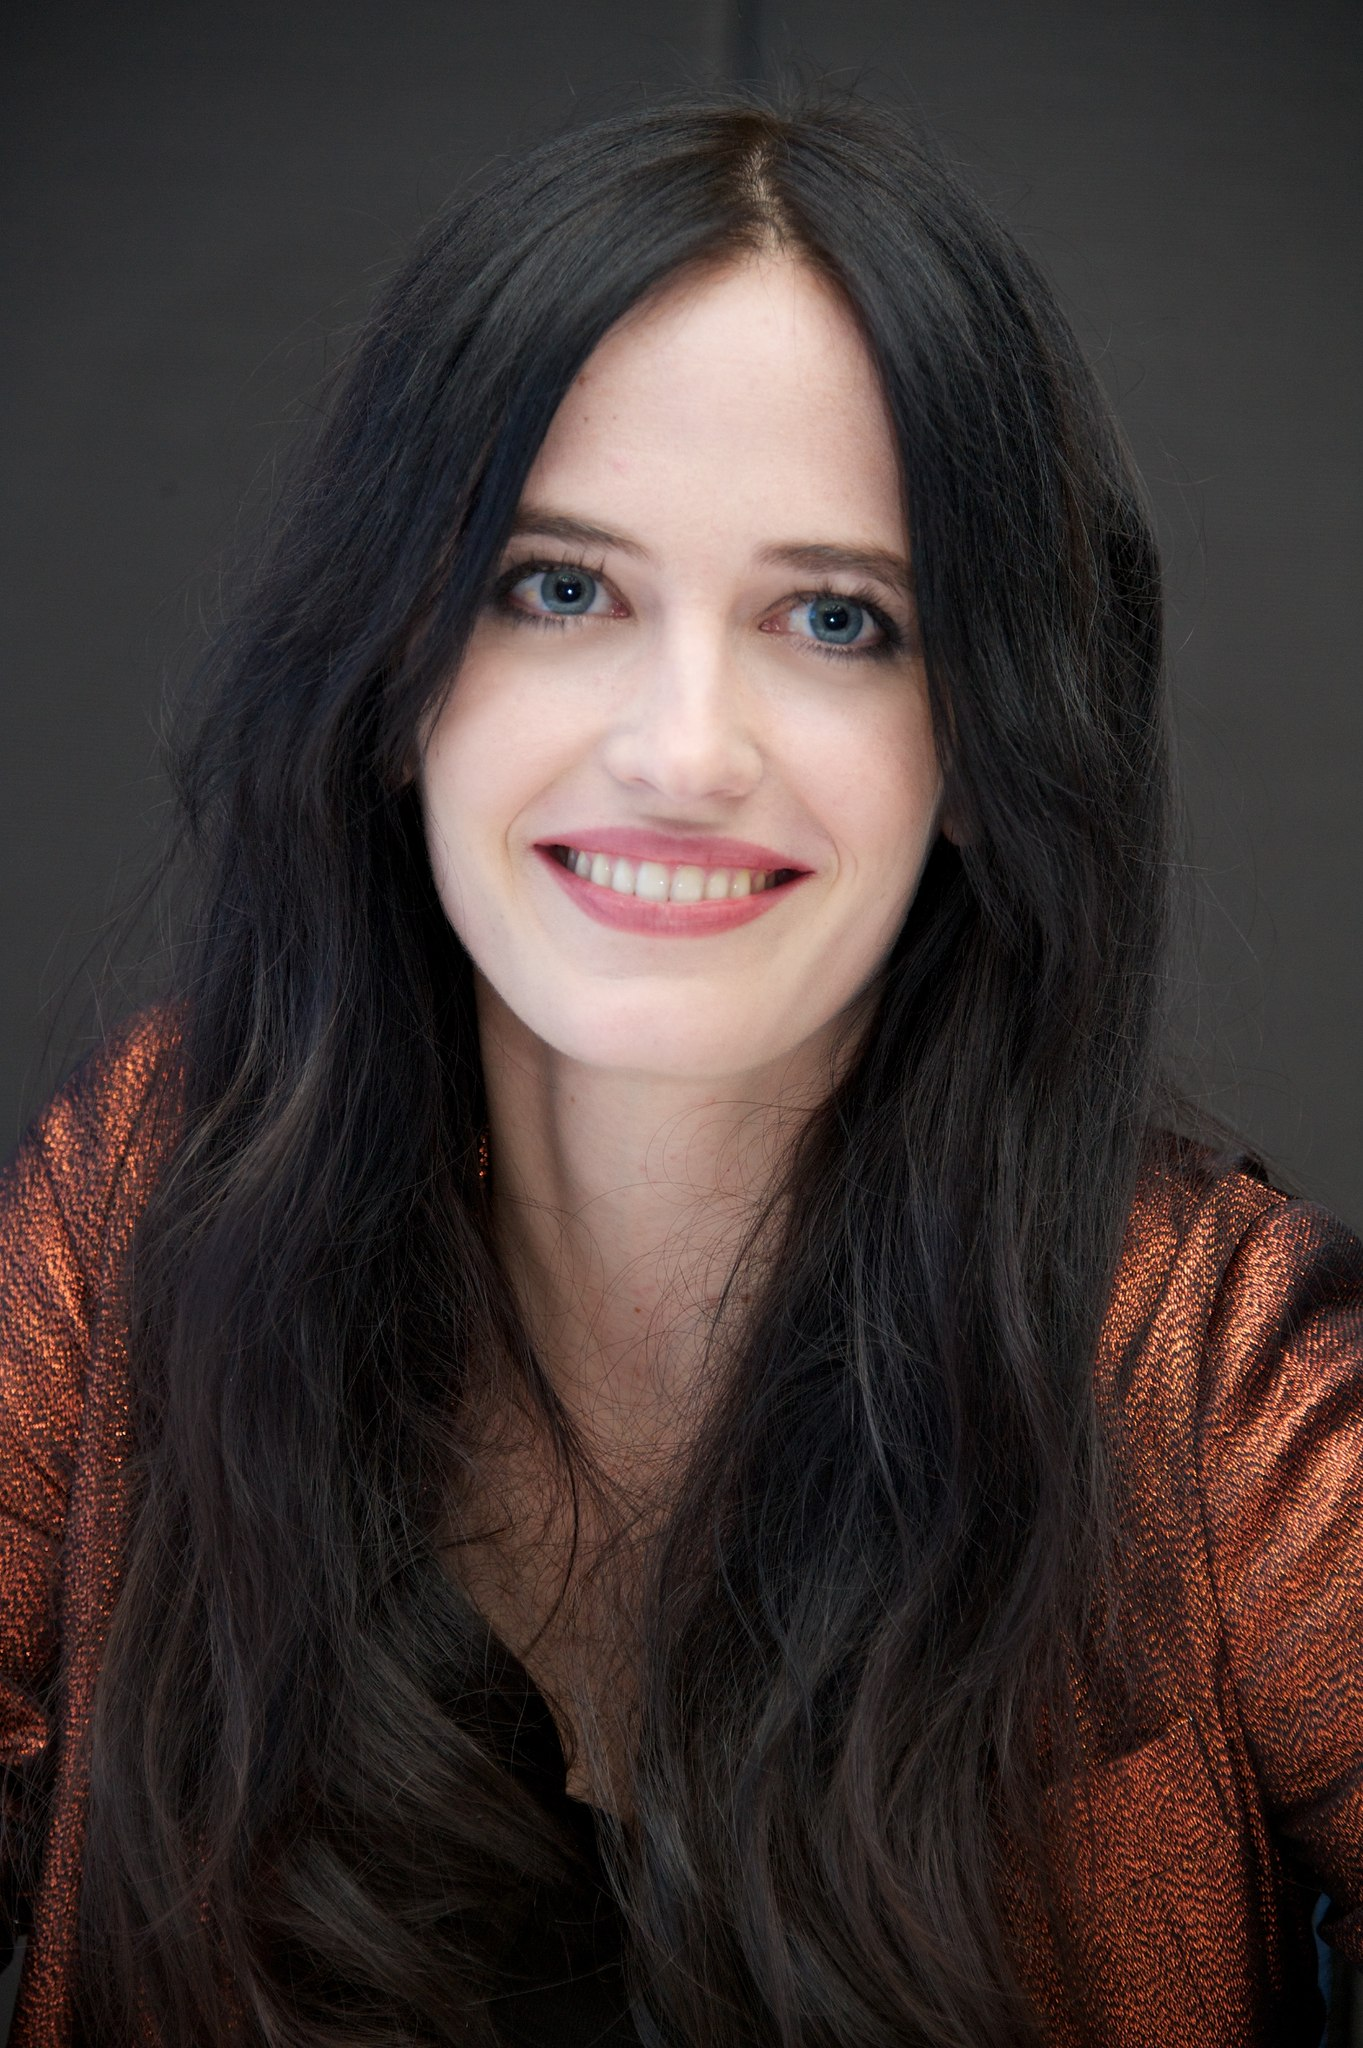 Eva Green on Pinterest | Eva Green, Casino Royale and ... Eva Green